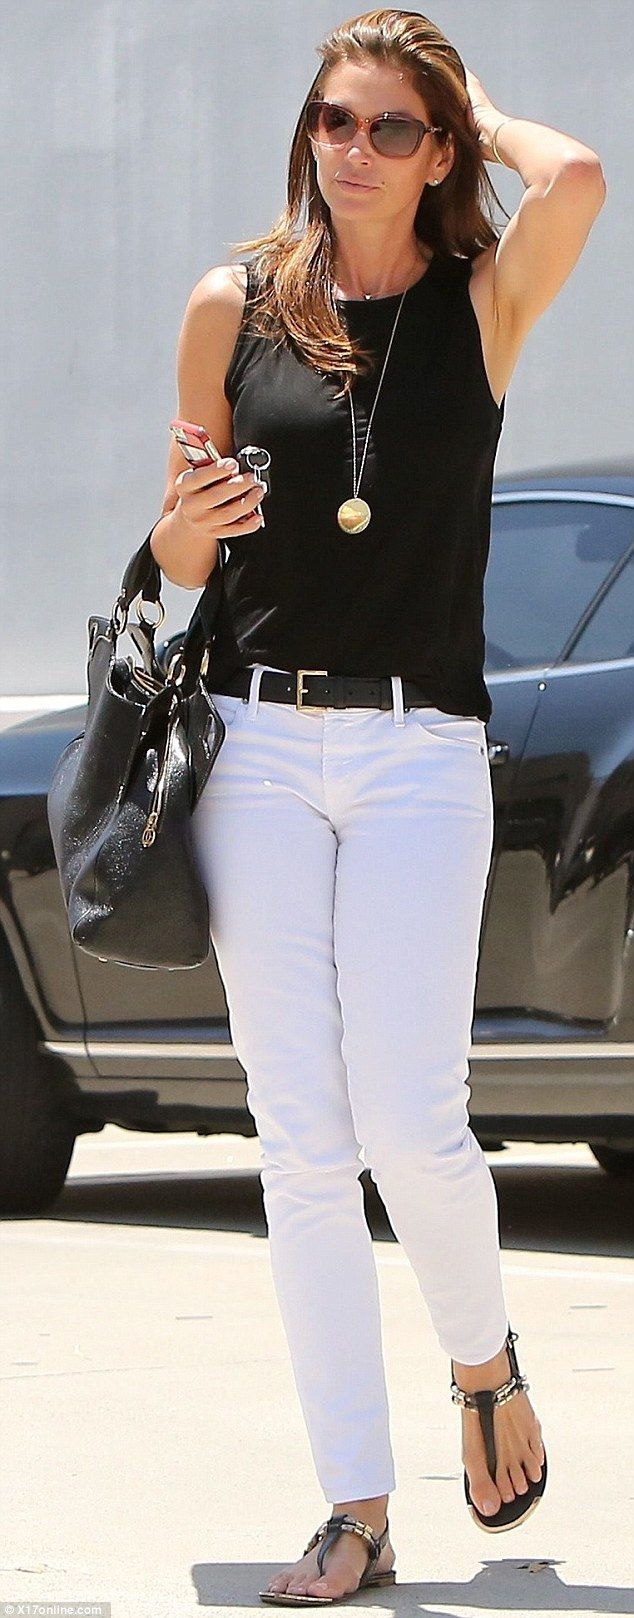 25  best ideas about White Jeans on Pinterest | White jeans summer ...